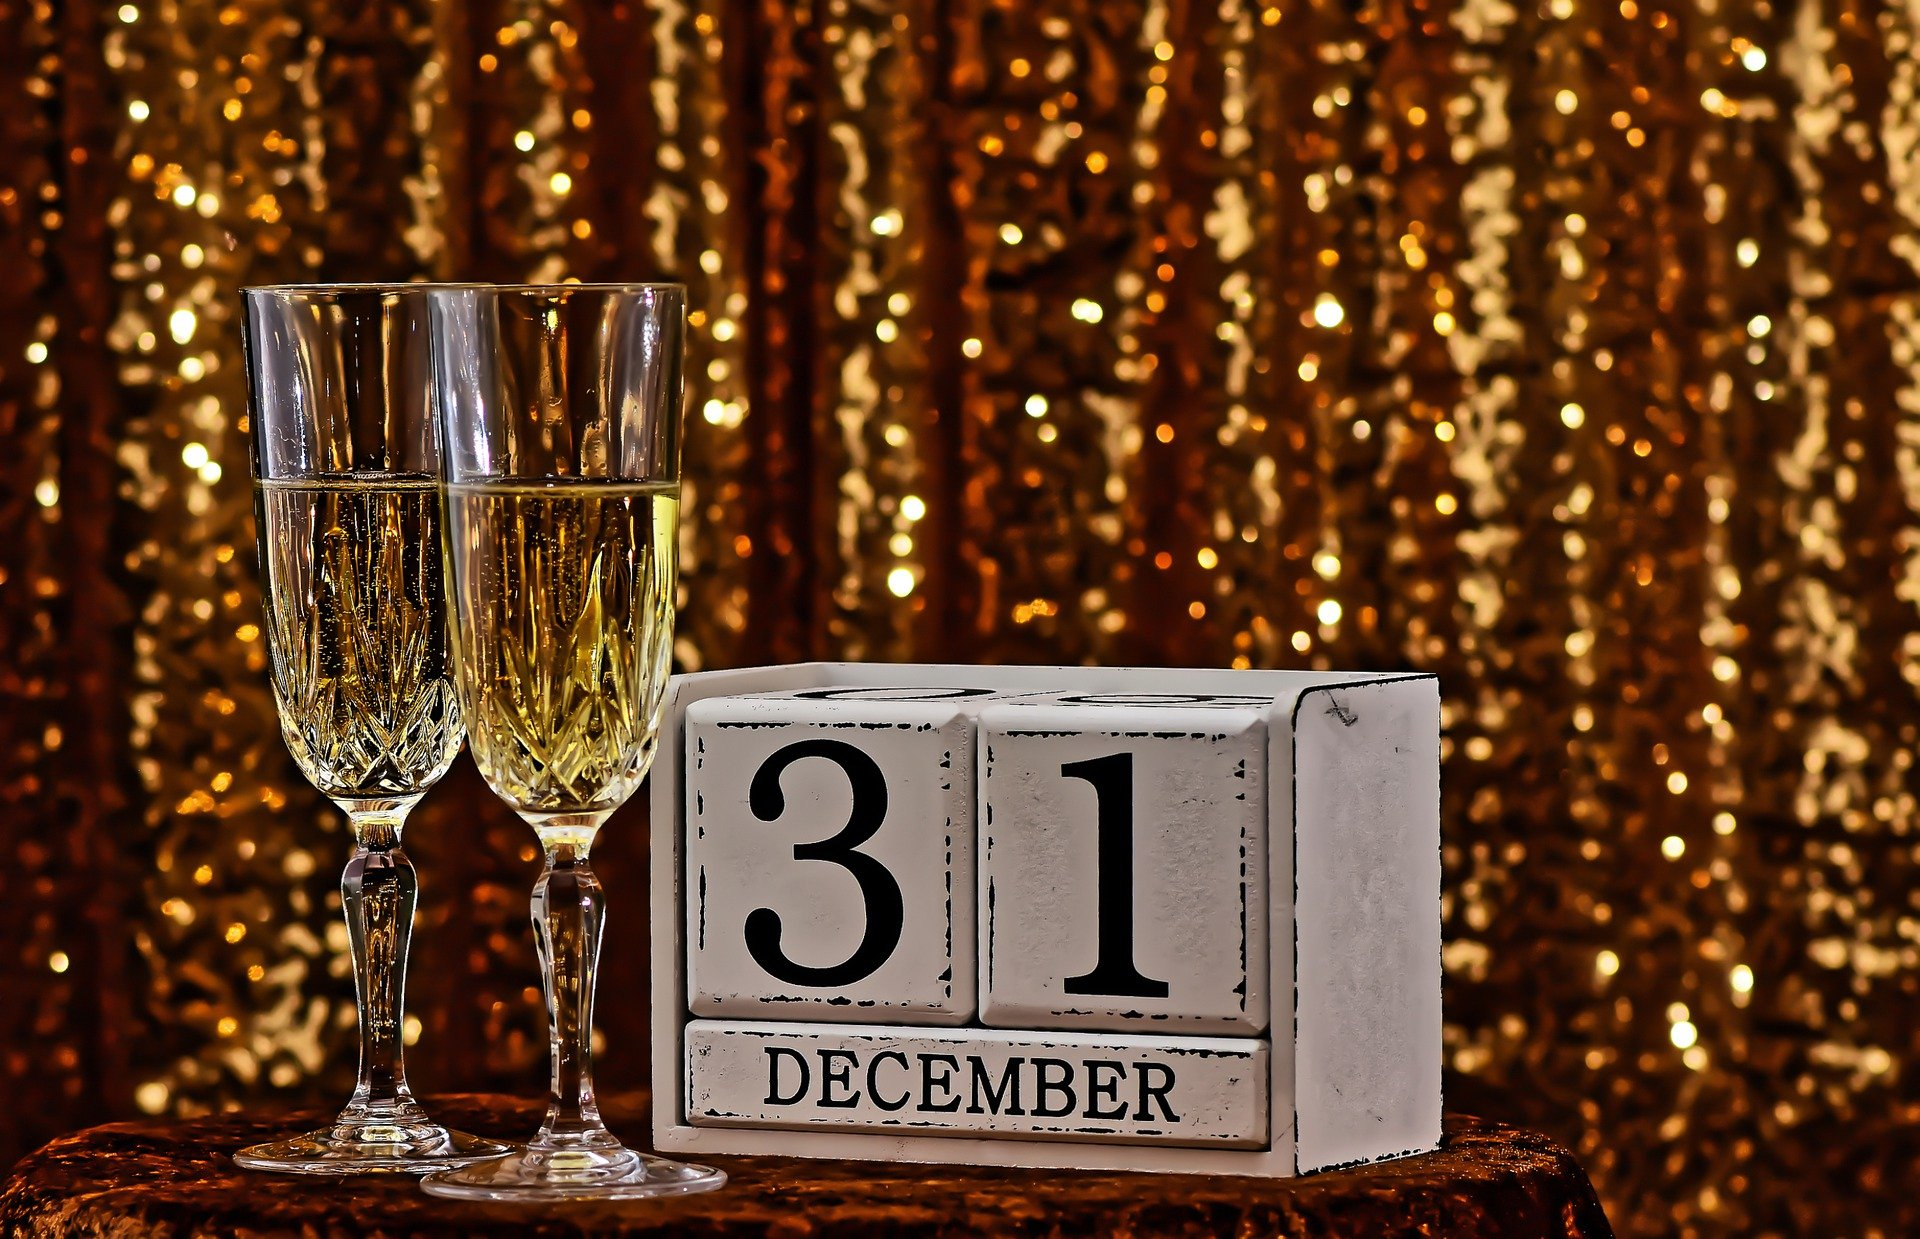 december 31, new year countdown